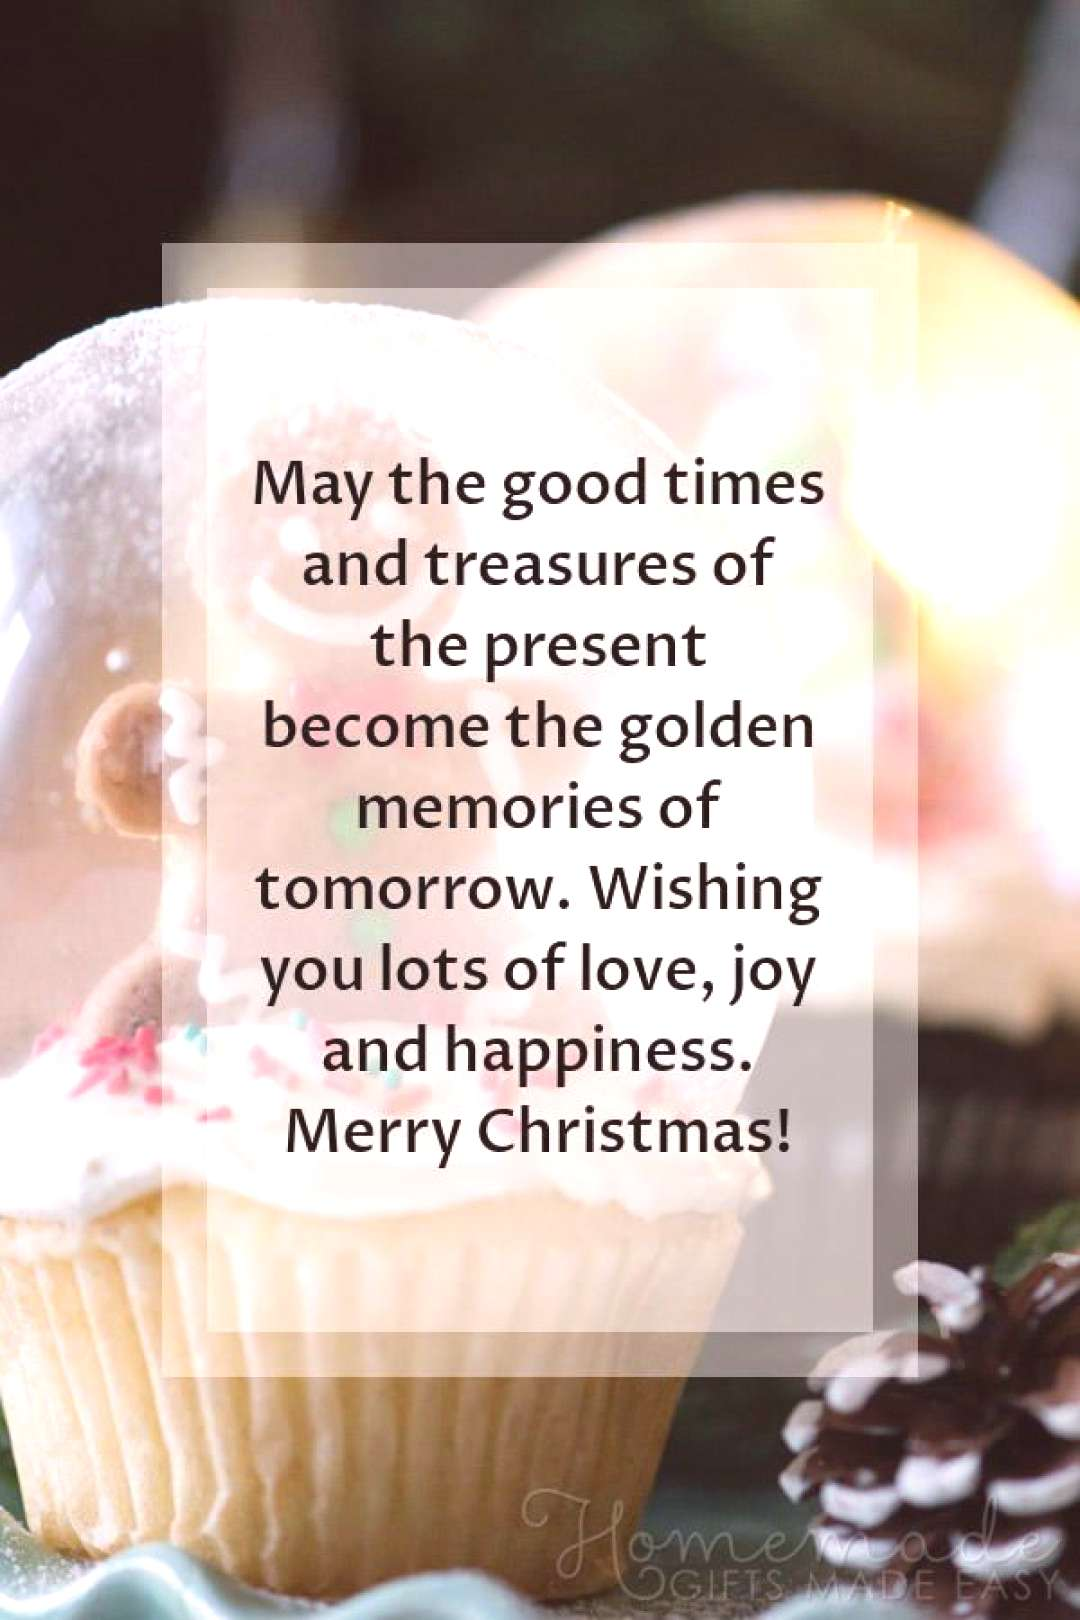 Christmas Greetings | May the good times and treasures of the present become the golden memories of